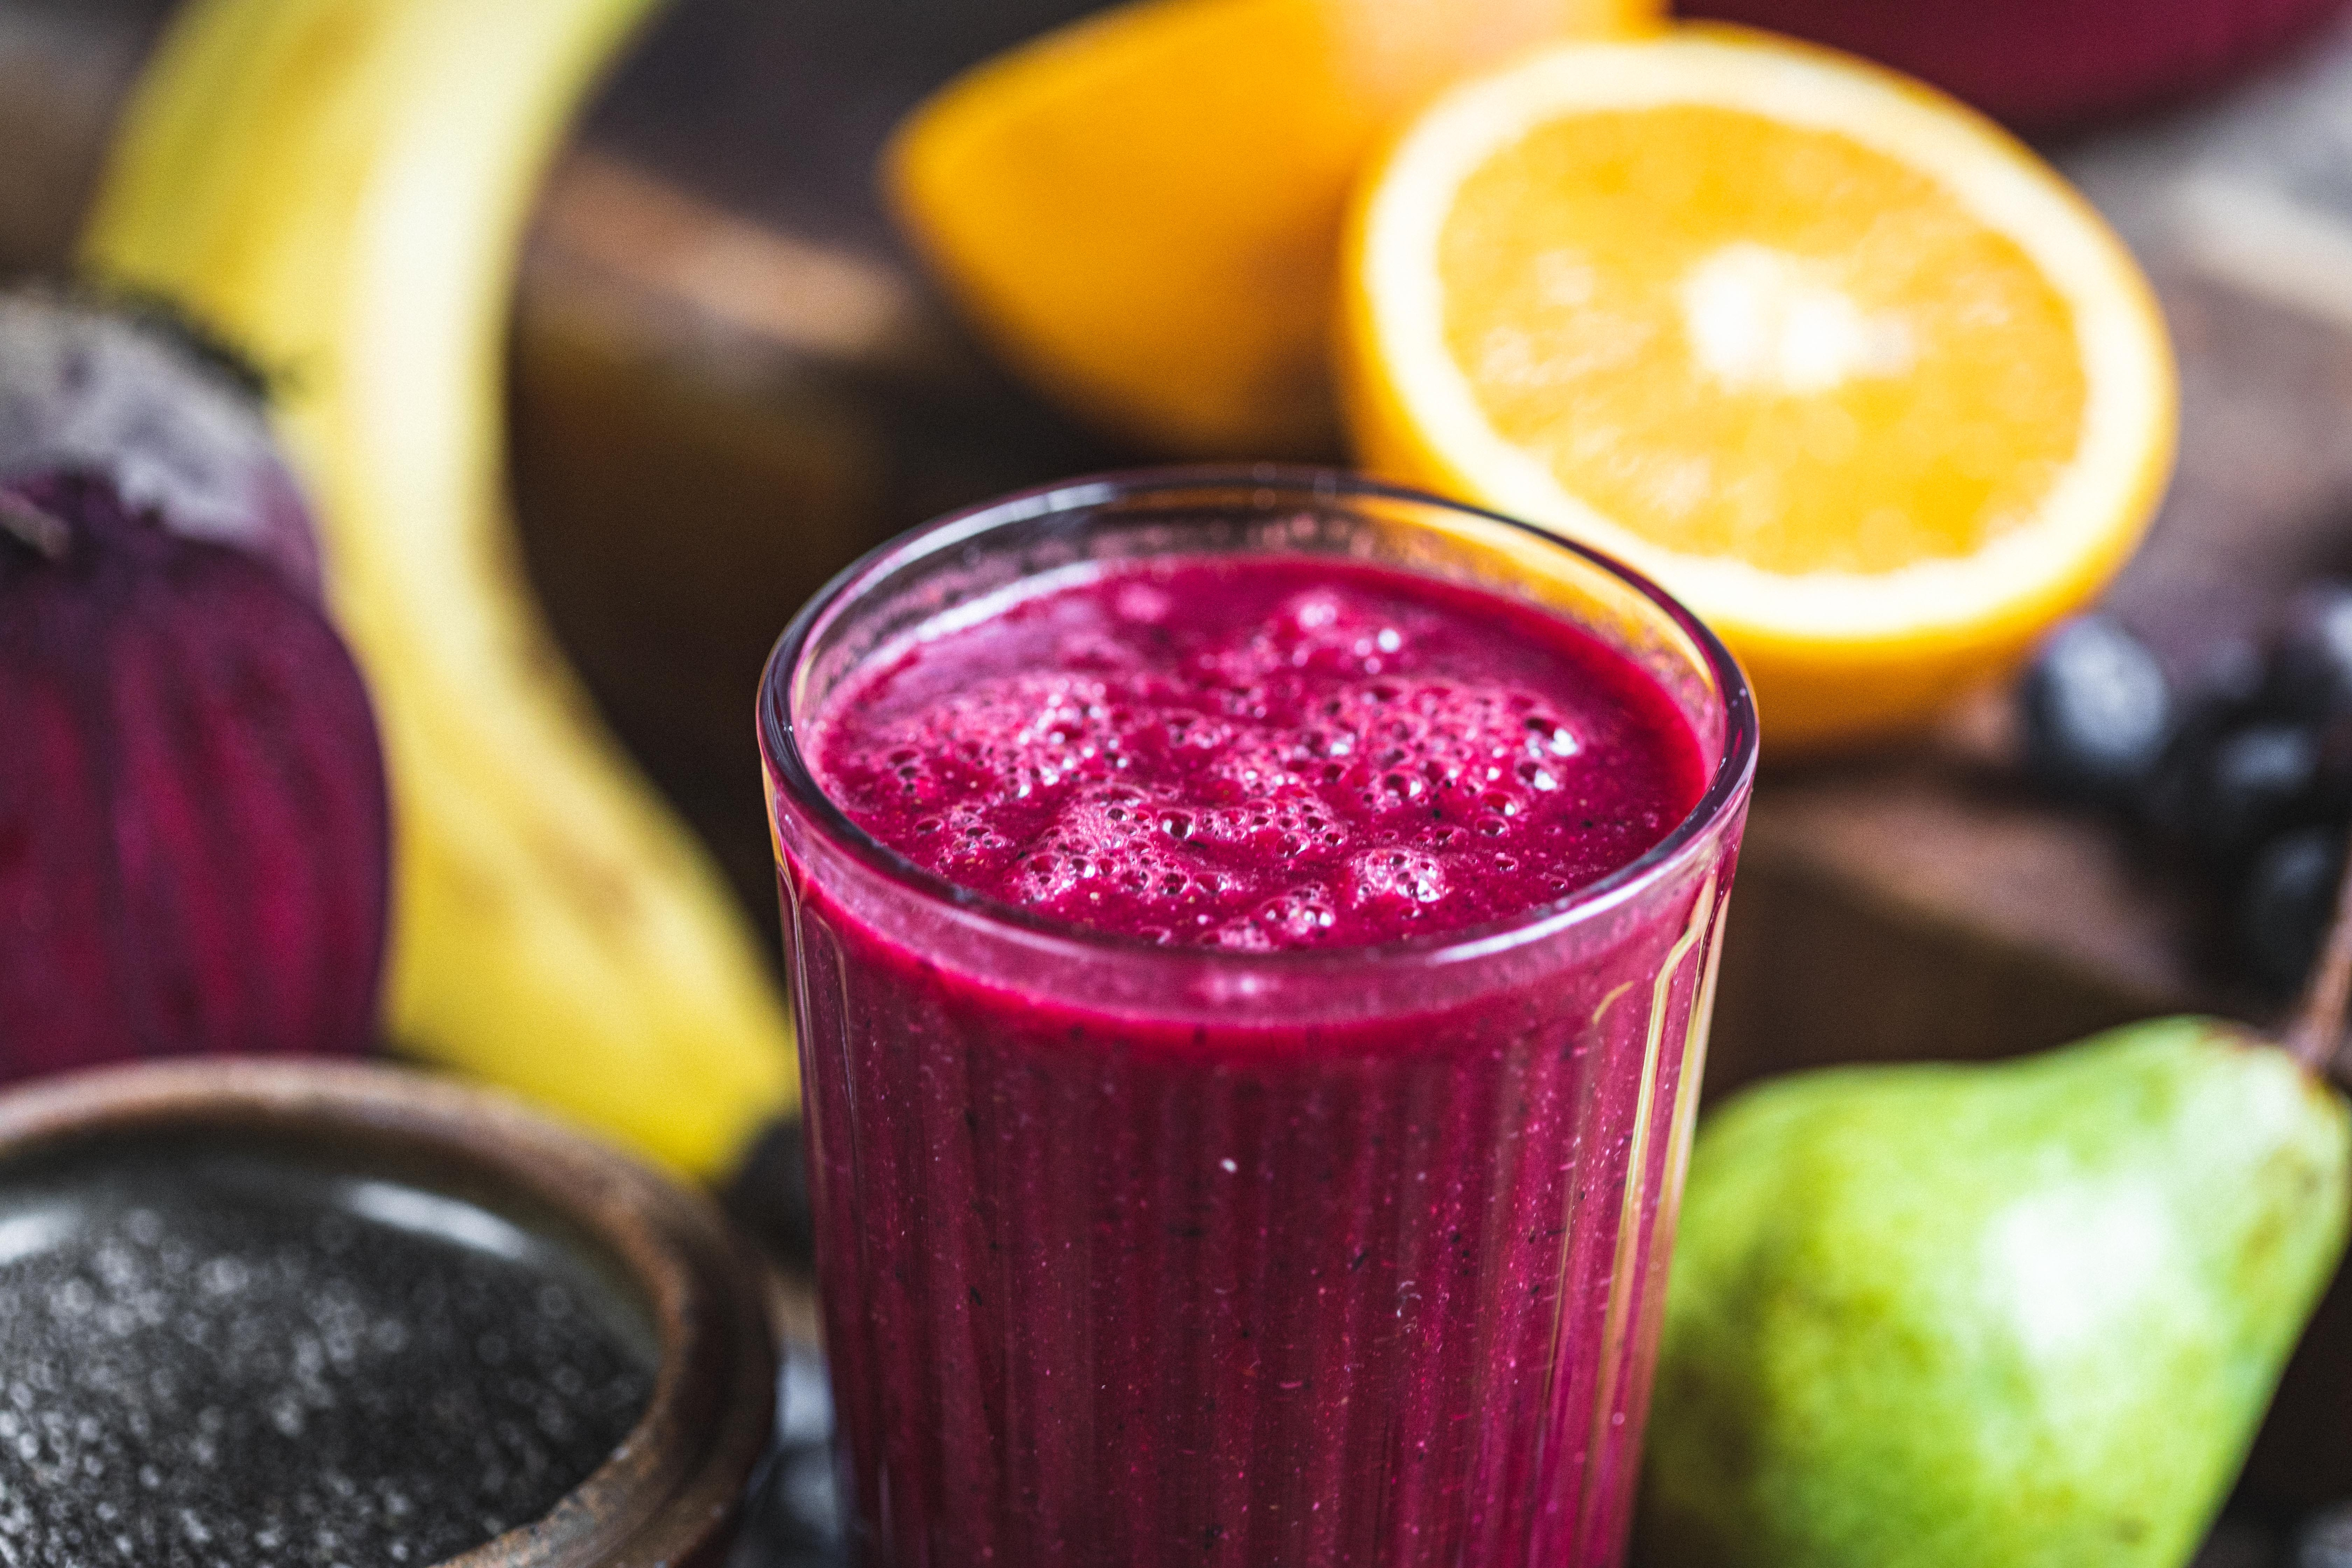 Drinks and juicing